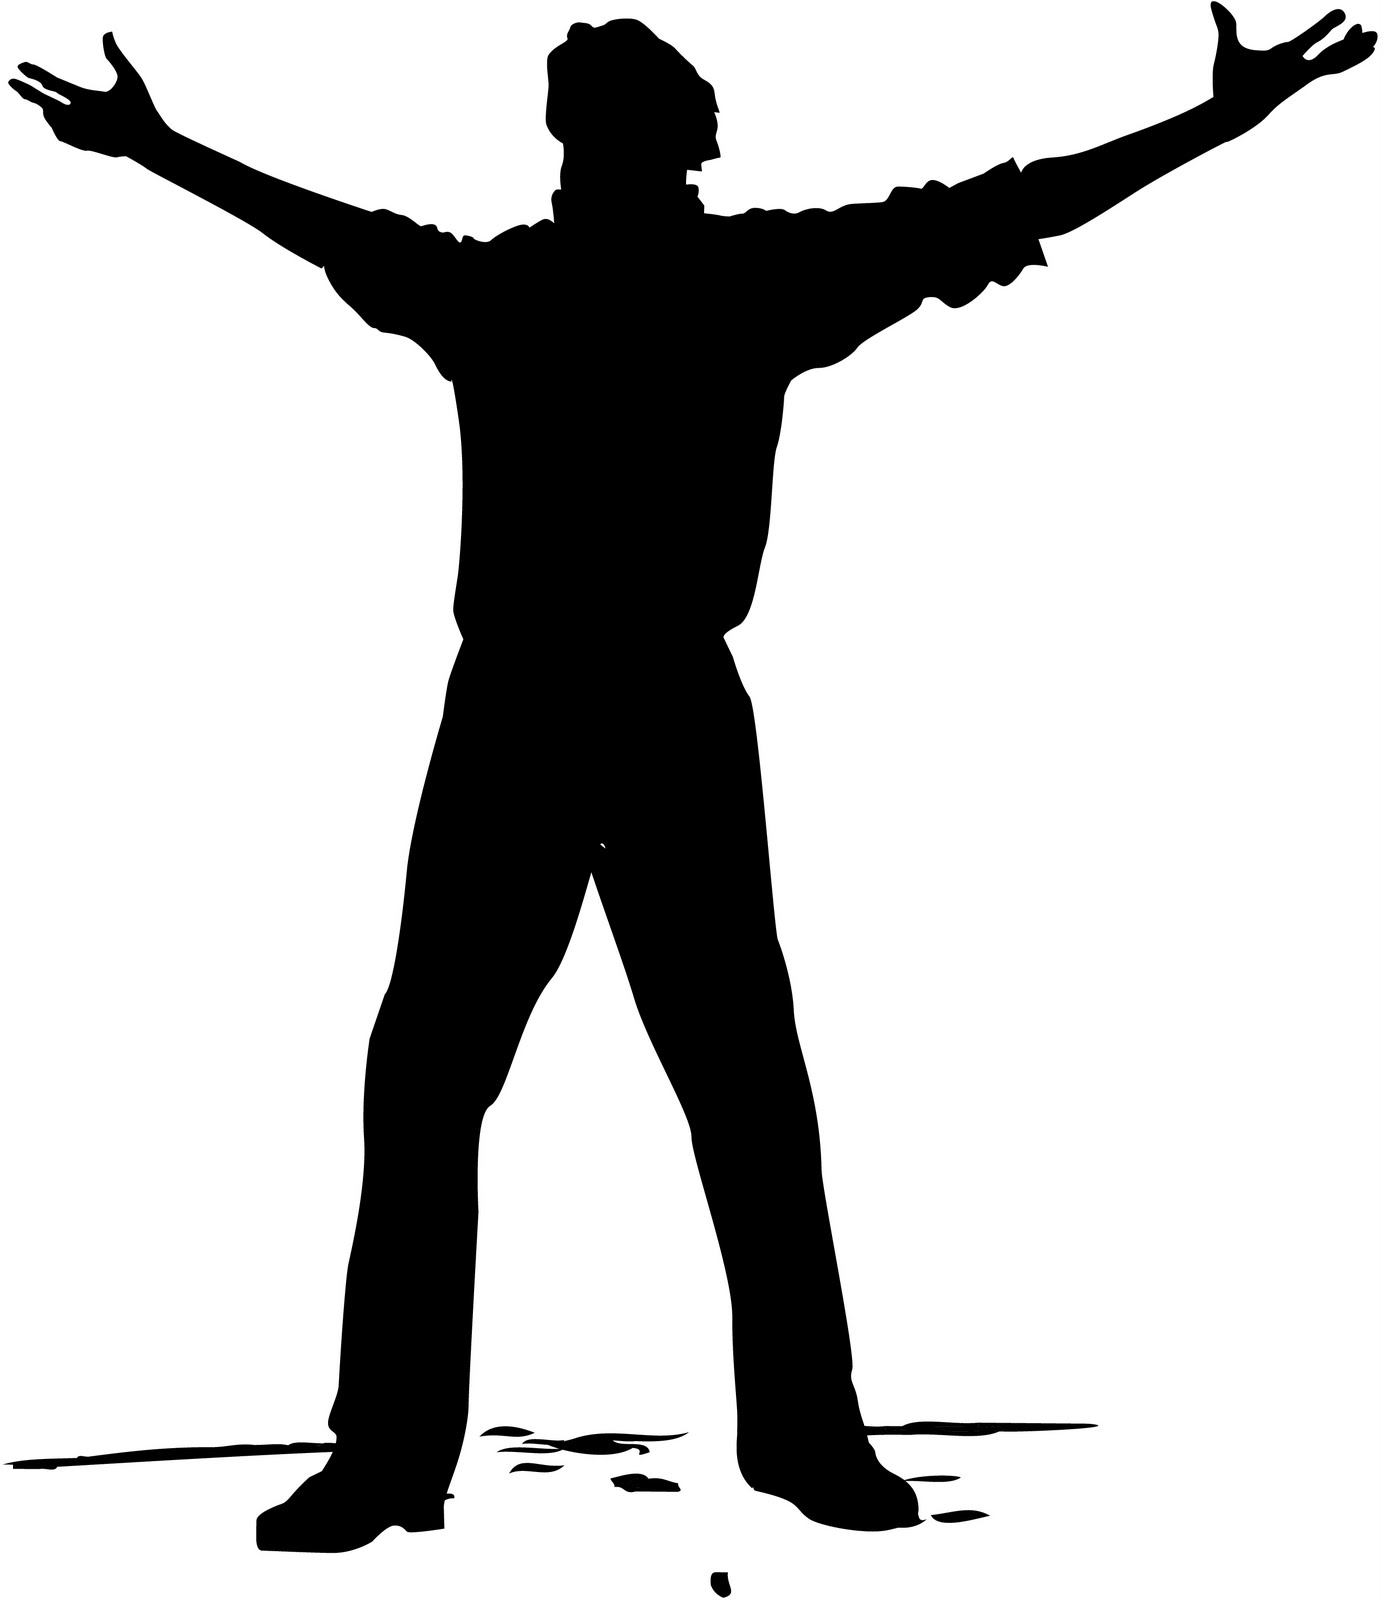 Free Man Reaching Out Silhouette, Download Free Clip Art.